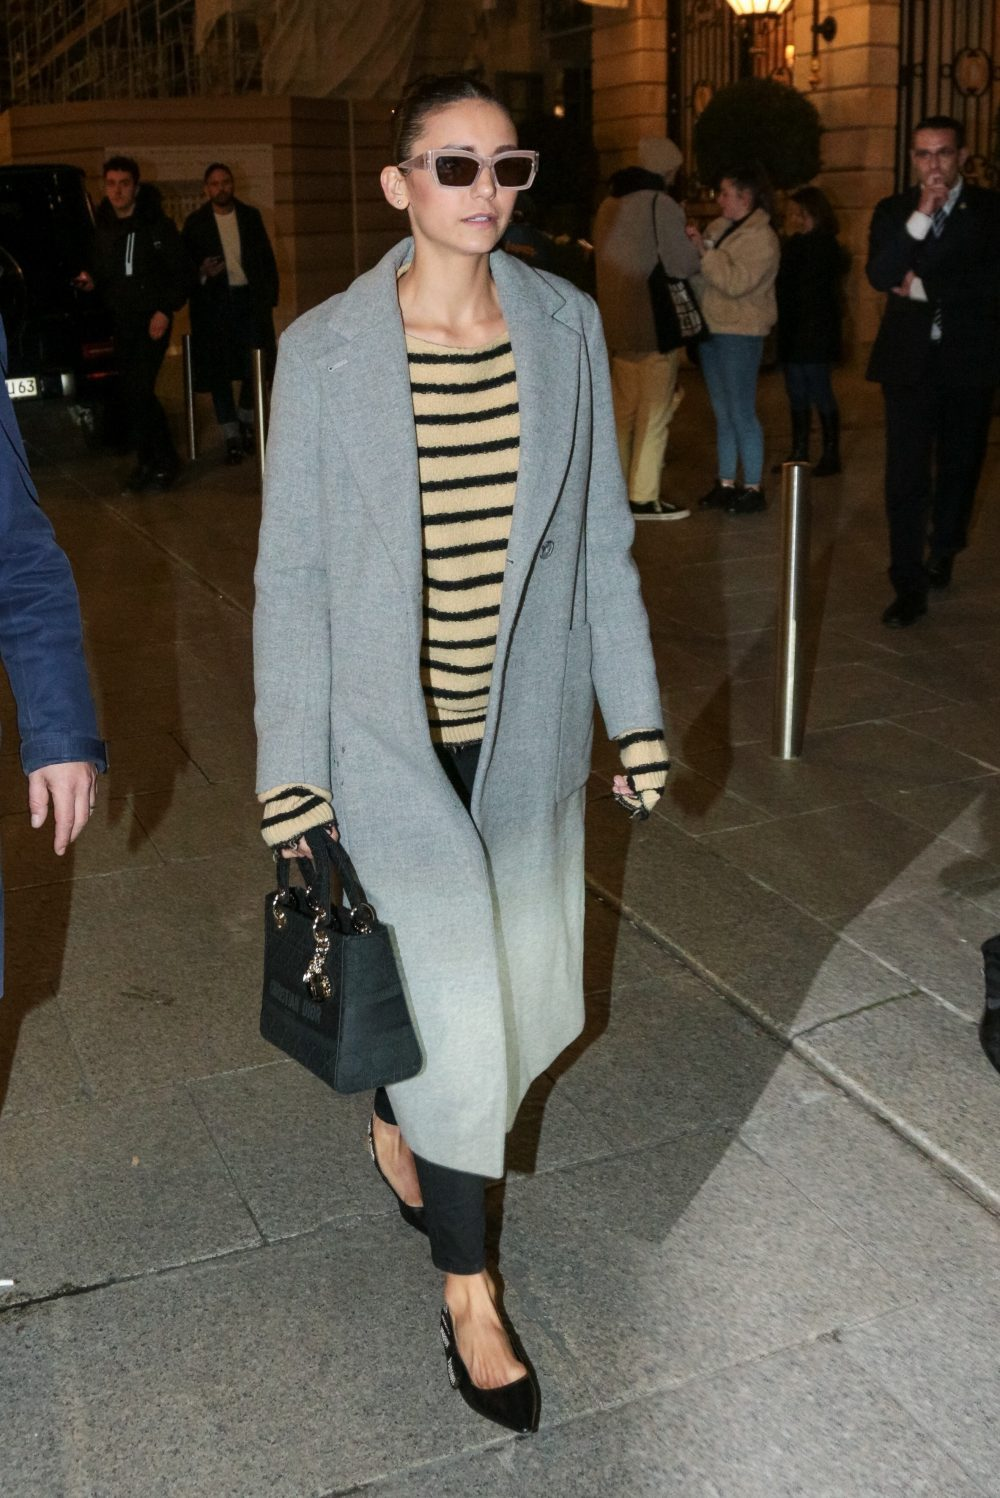 Nina Dobrev leaves the Ritz in Paris